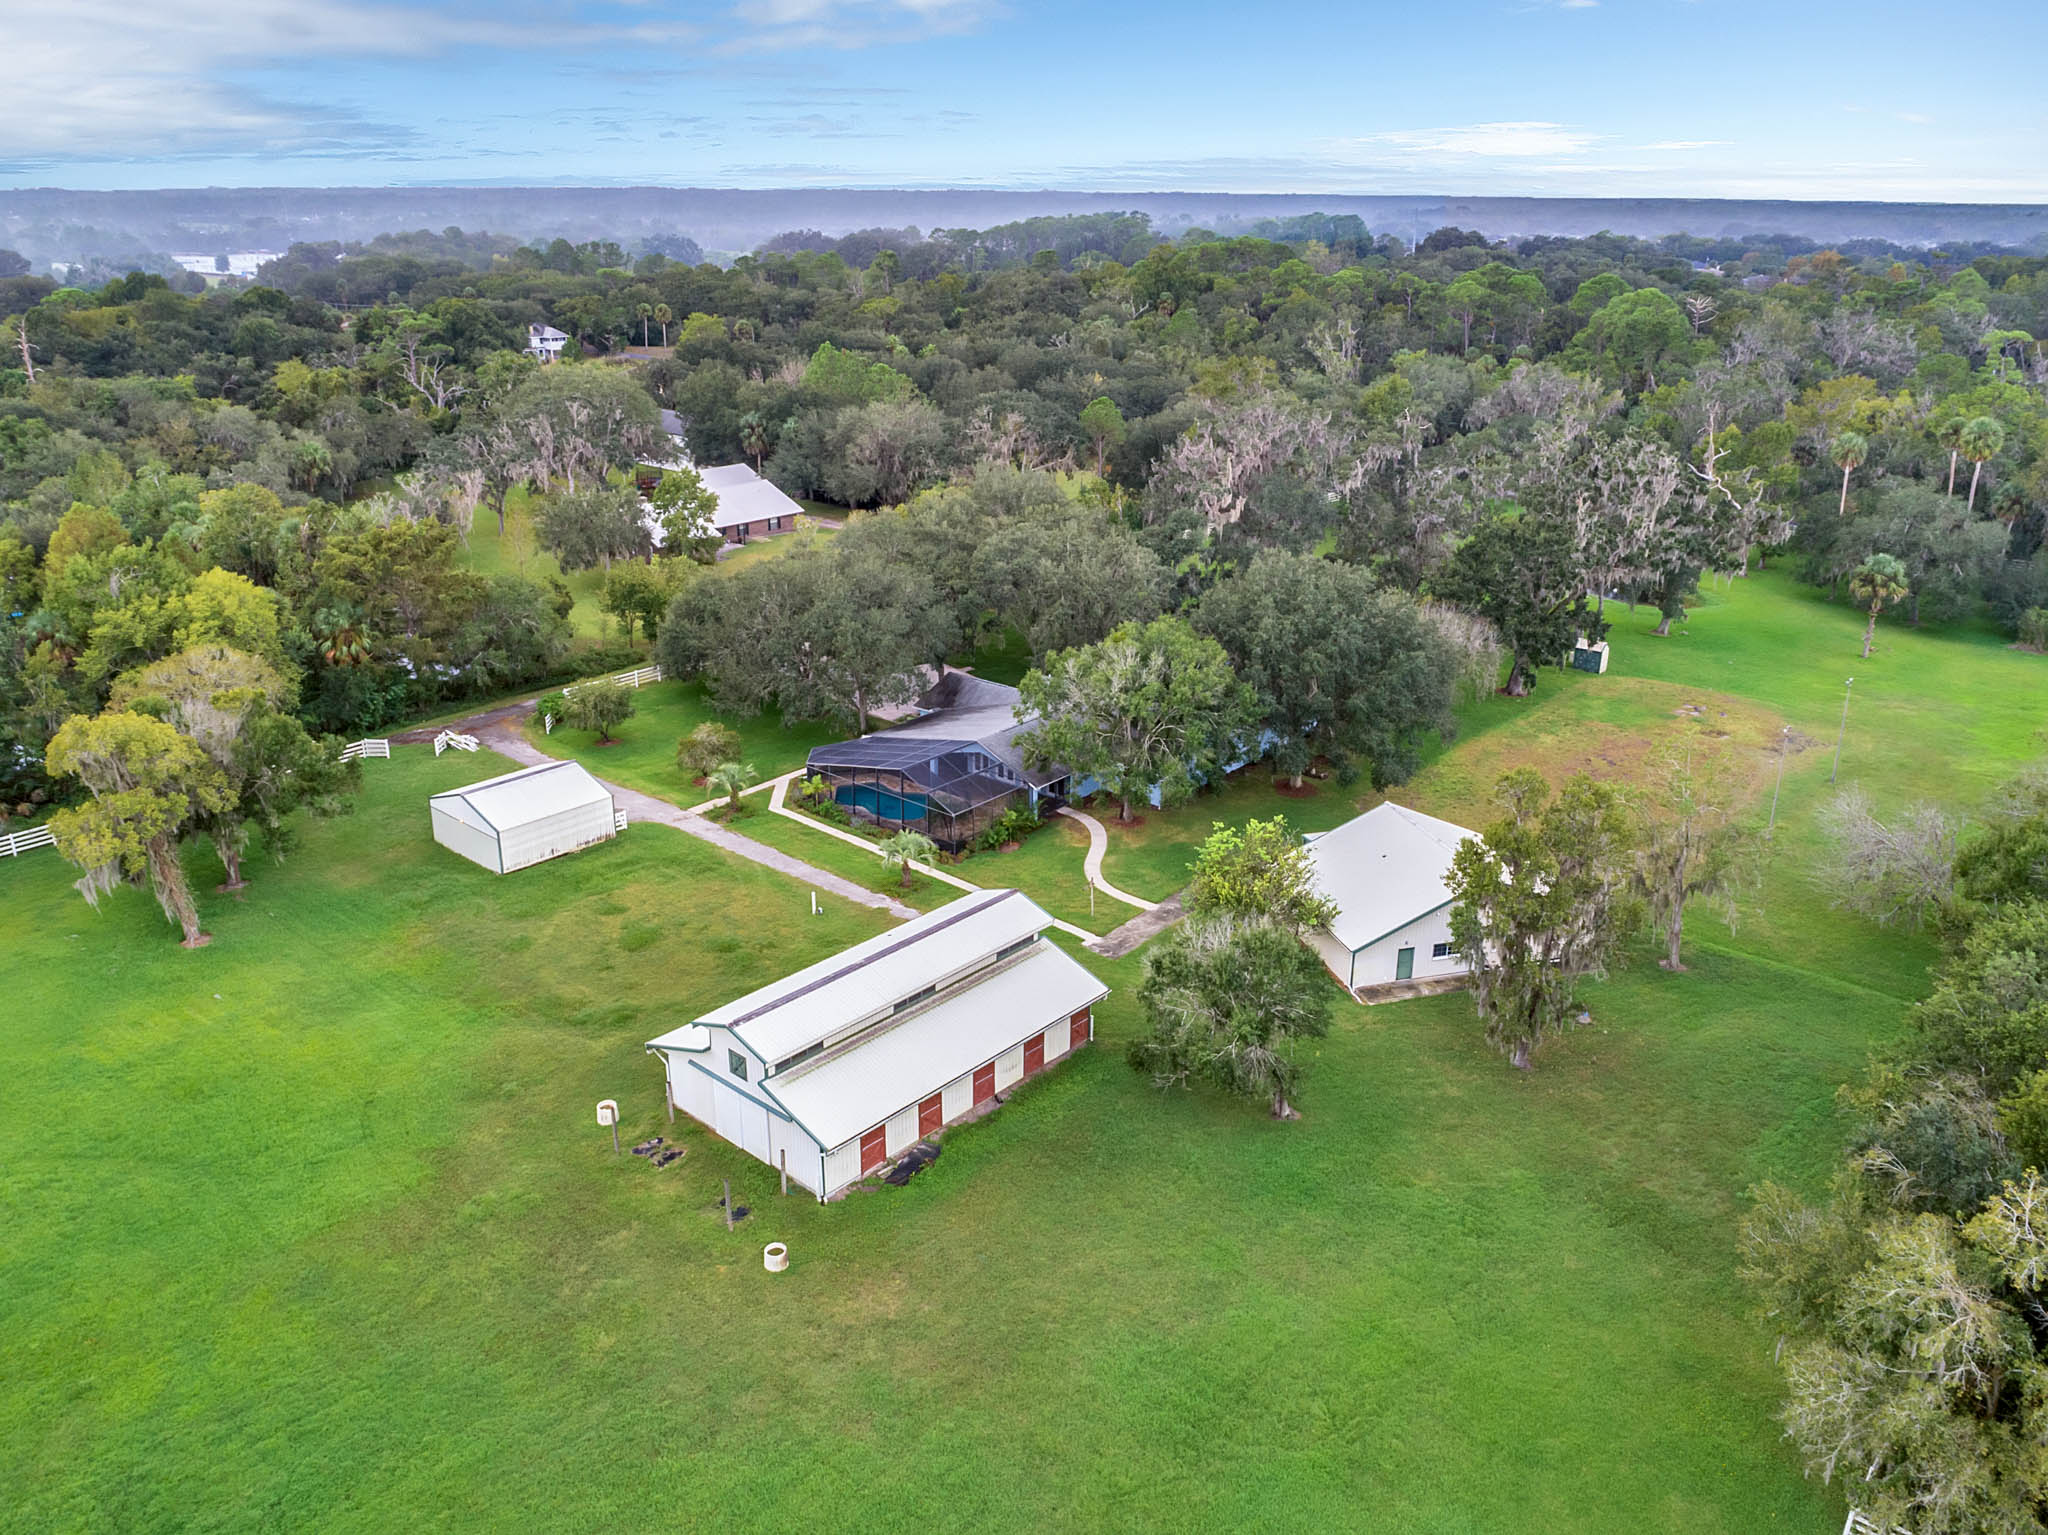 PRIVATE EQUESTRIAN ESTATE IN SANFORD